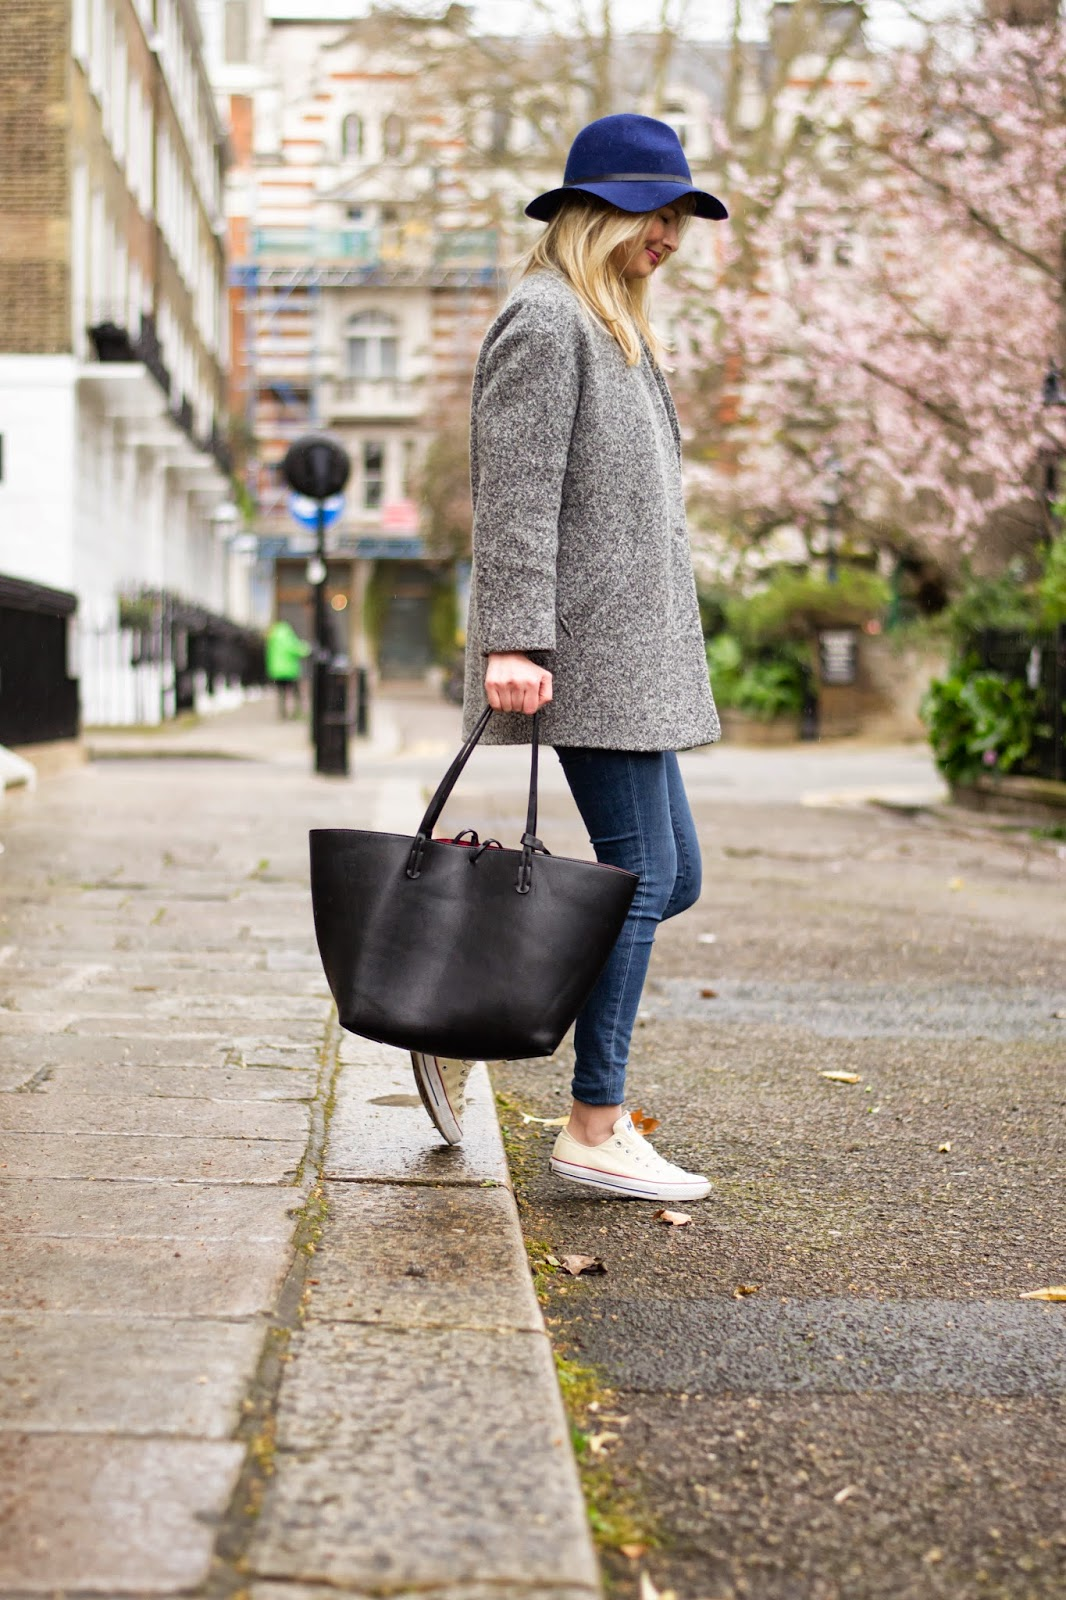 Cobalt blue hat, topshop fedora hat, zara bag, zara reversable bag, mansur gavriel dupe bag, j brand jeans, converse and skinny jeans, iro paris coat, grey coat, london blogger, london street style